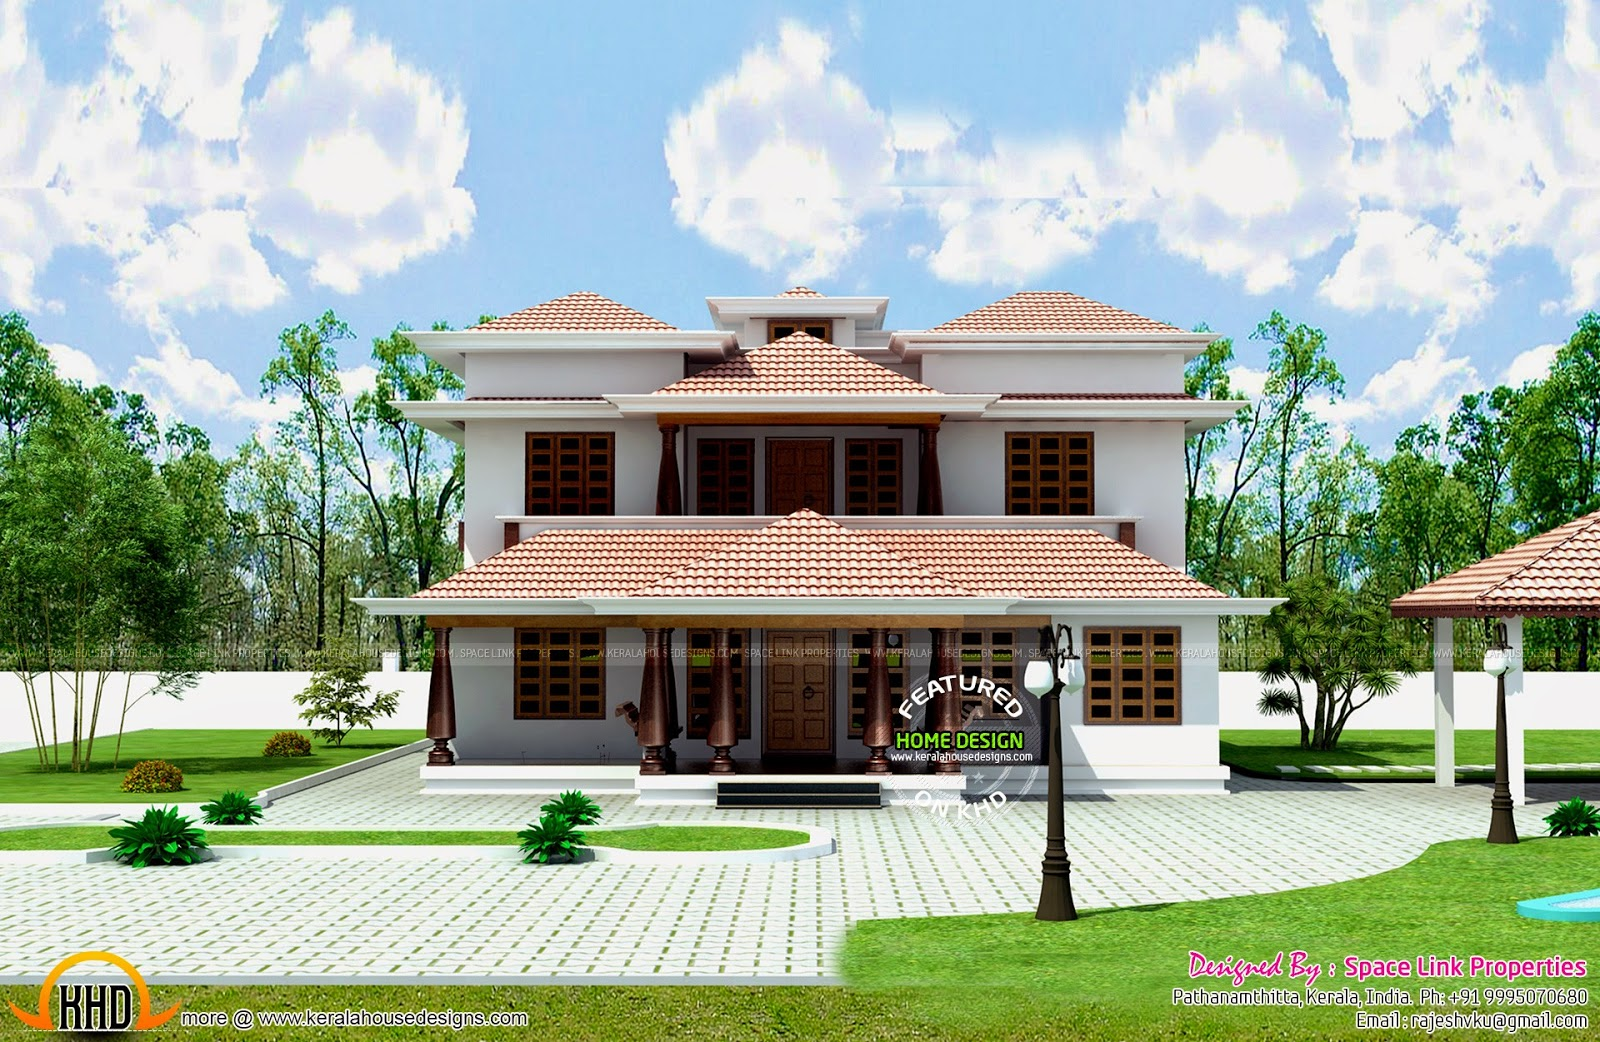 Typical kerala traditional house kerala home design and for Kerala traditional home plans with photos